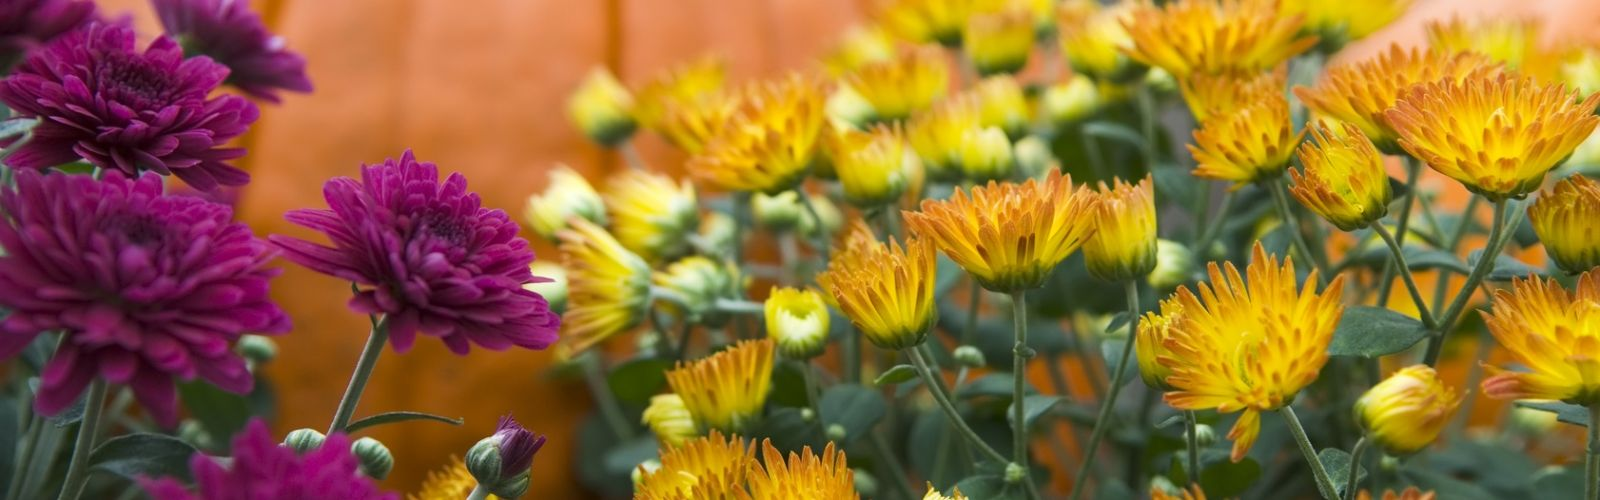 Blooming garden mums in gold and purple with orange pumpkin in background